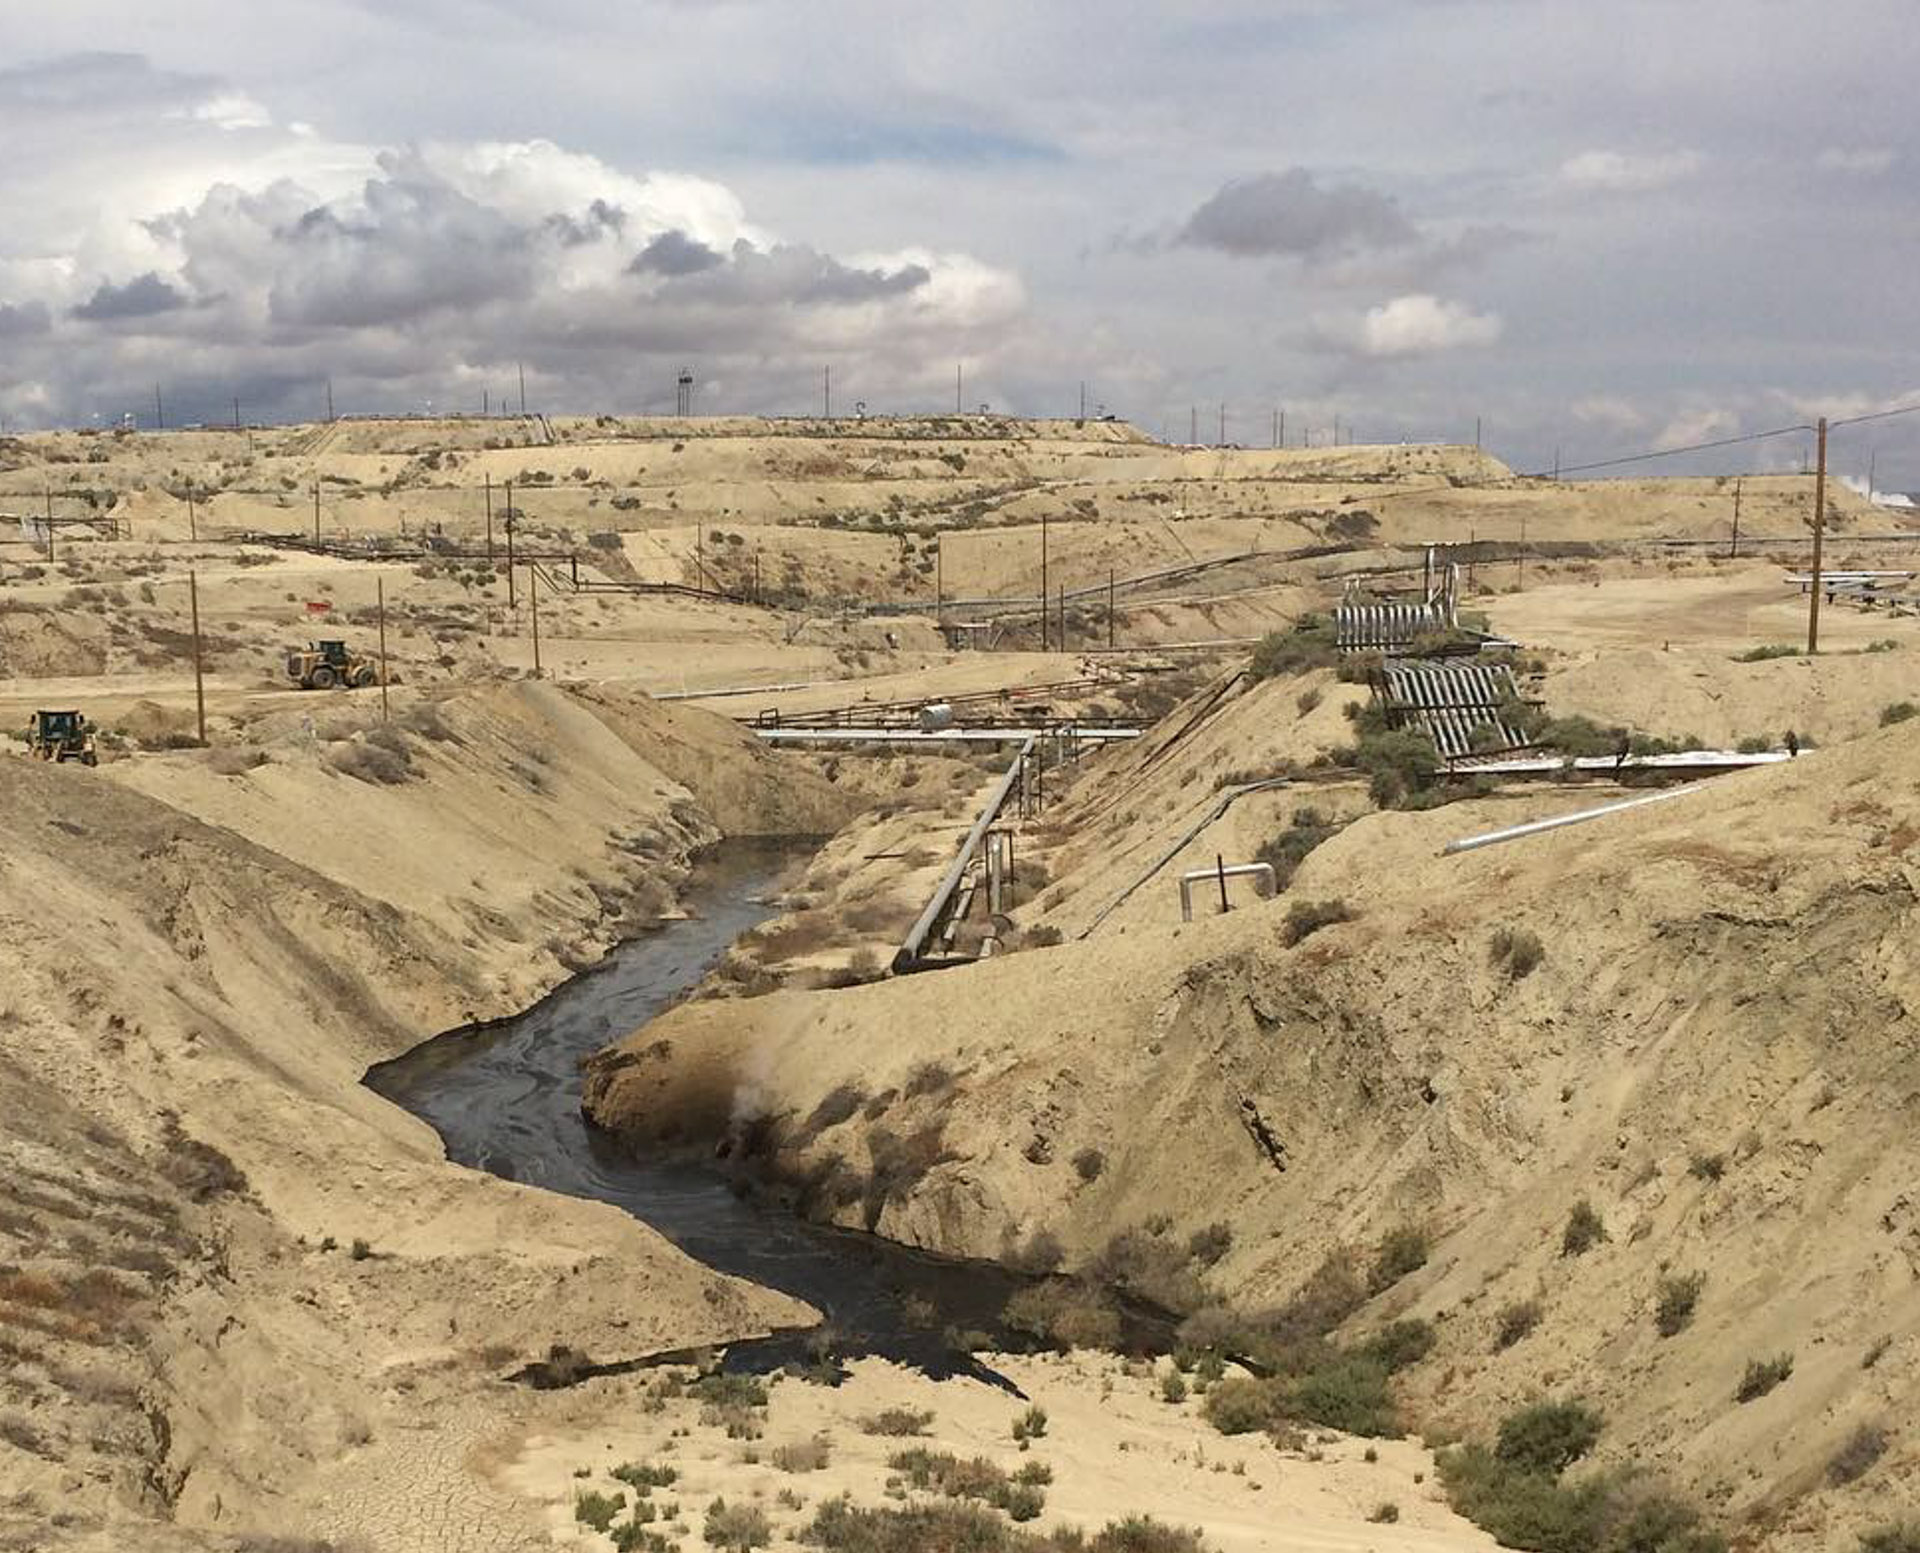 Chevron Well at Center of Major Oil Spill in Kern County Oil Field